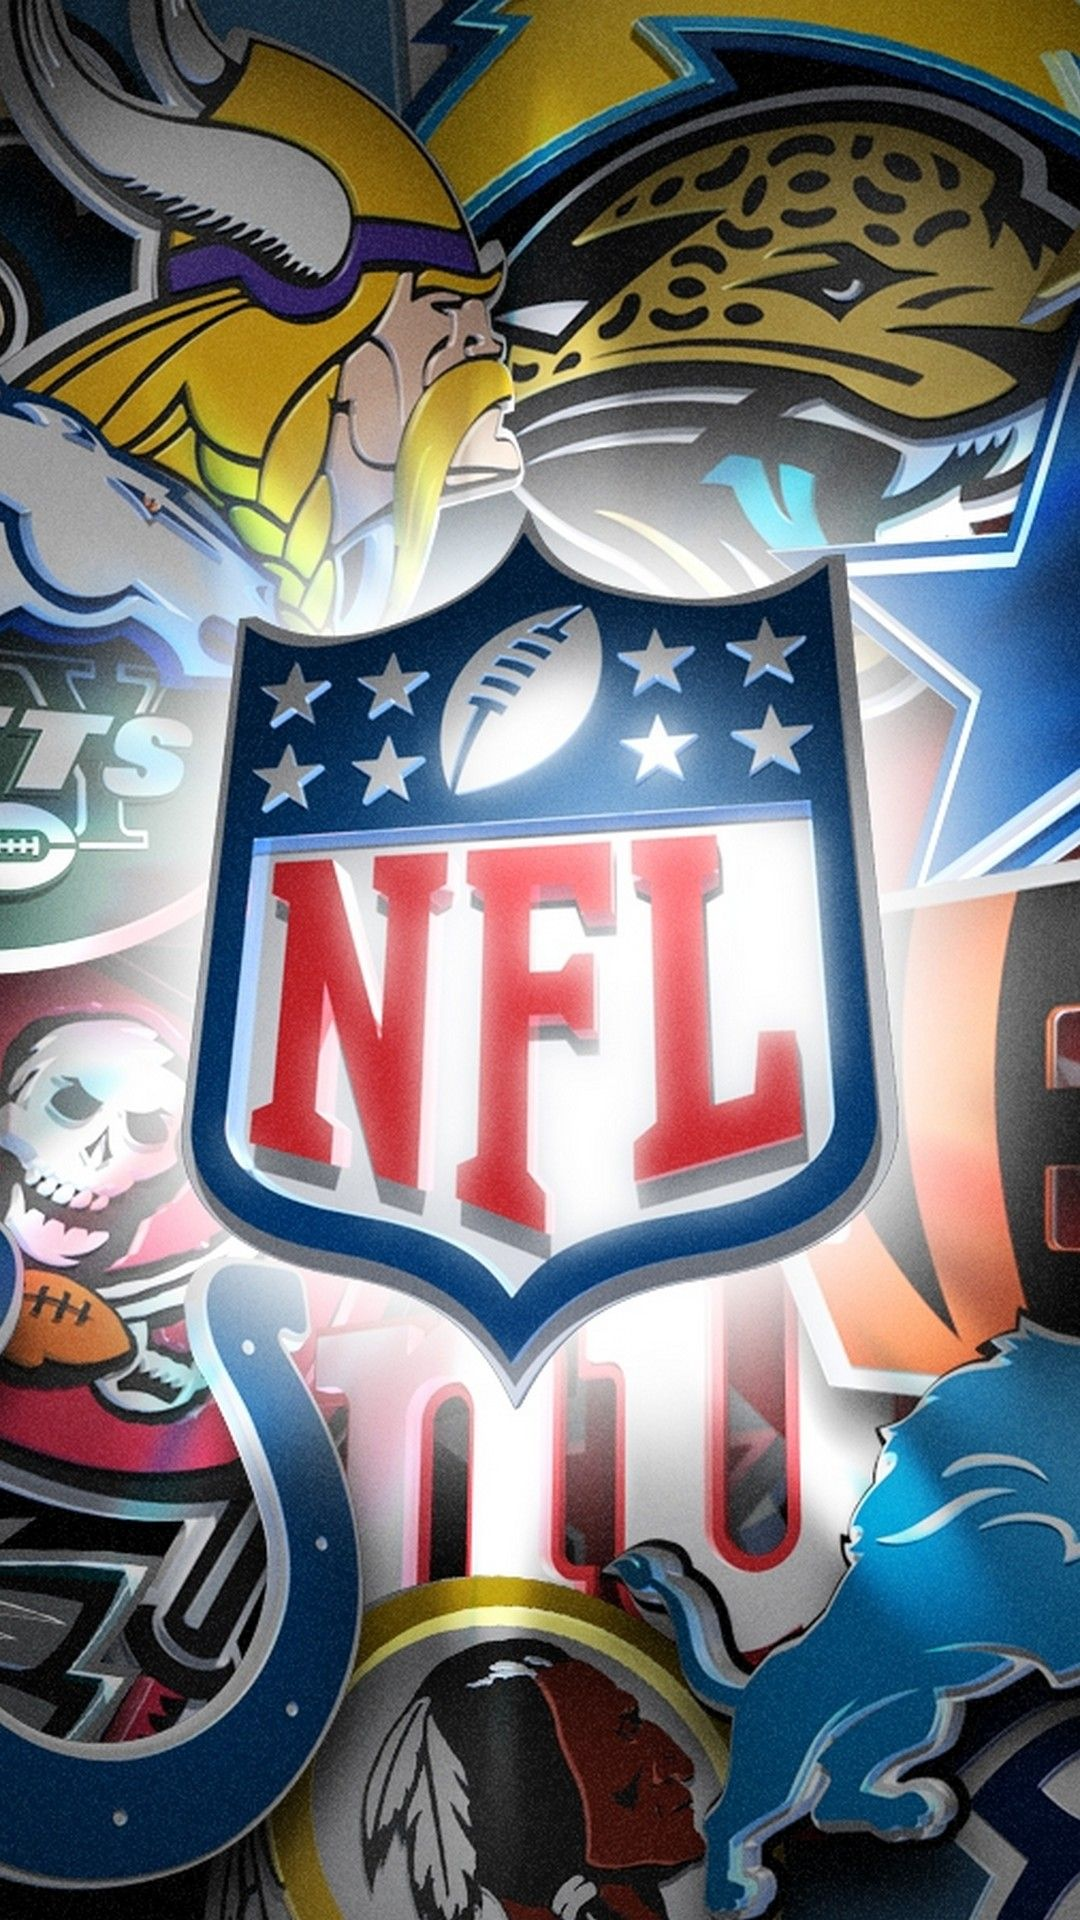 Nfl Wallpapers Nfl Football Wallpaper Football Wallpaper Rugby Wallpaper